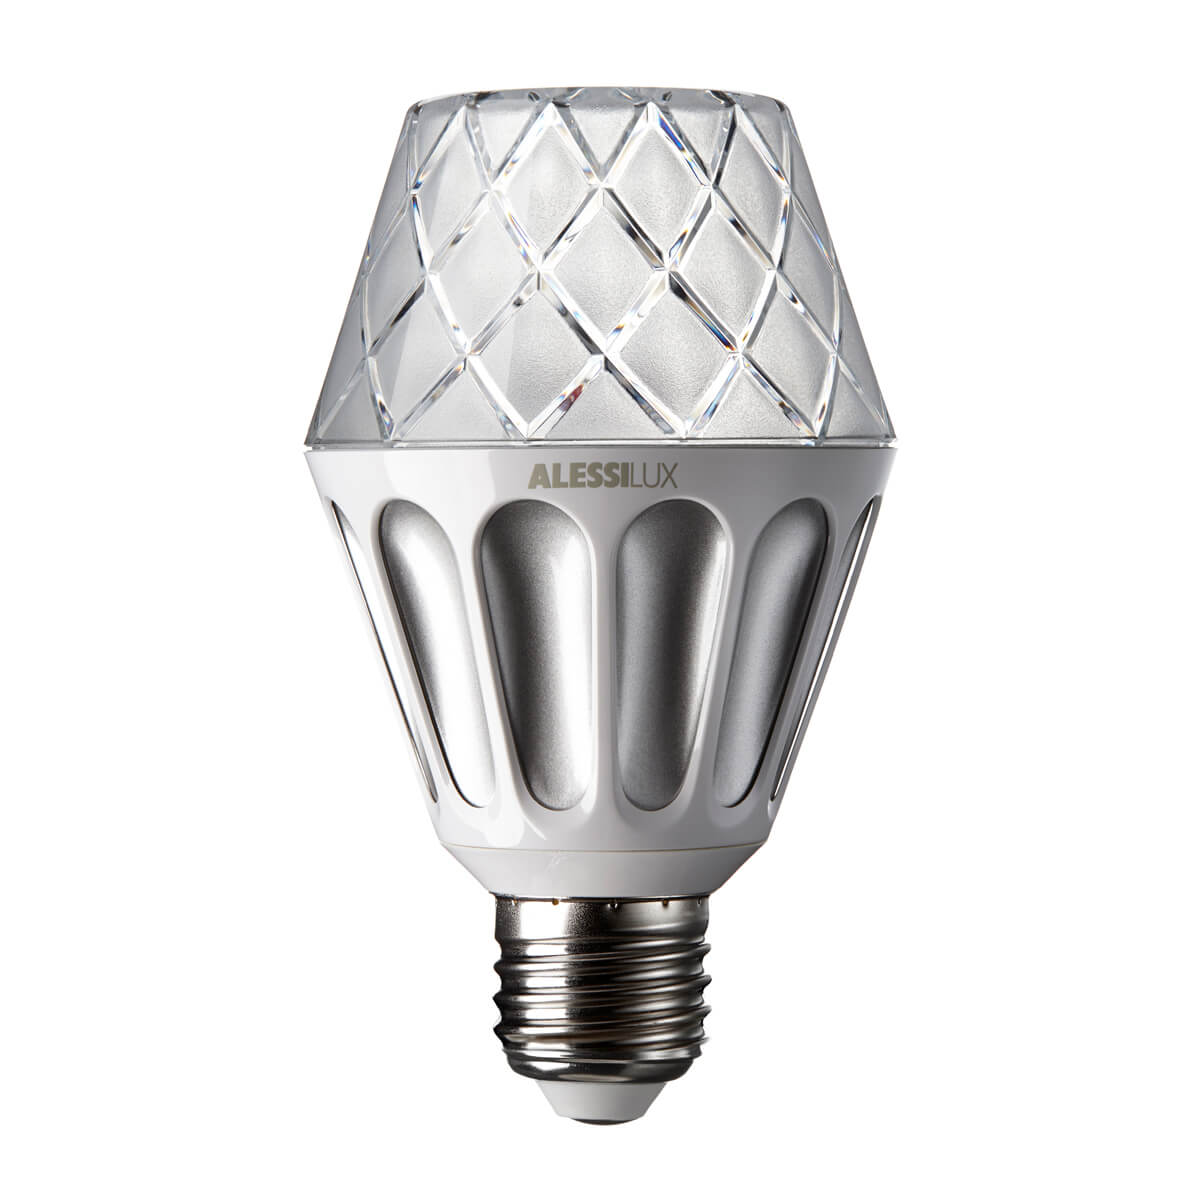 Vienna, LED light bulb for Alessilux